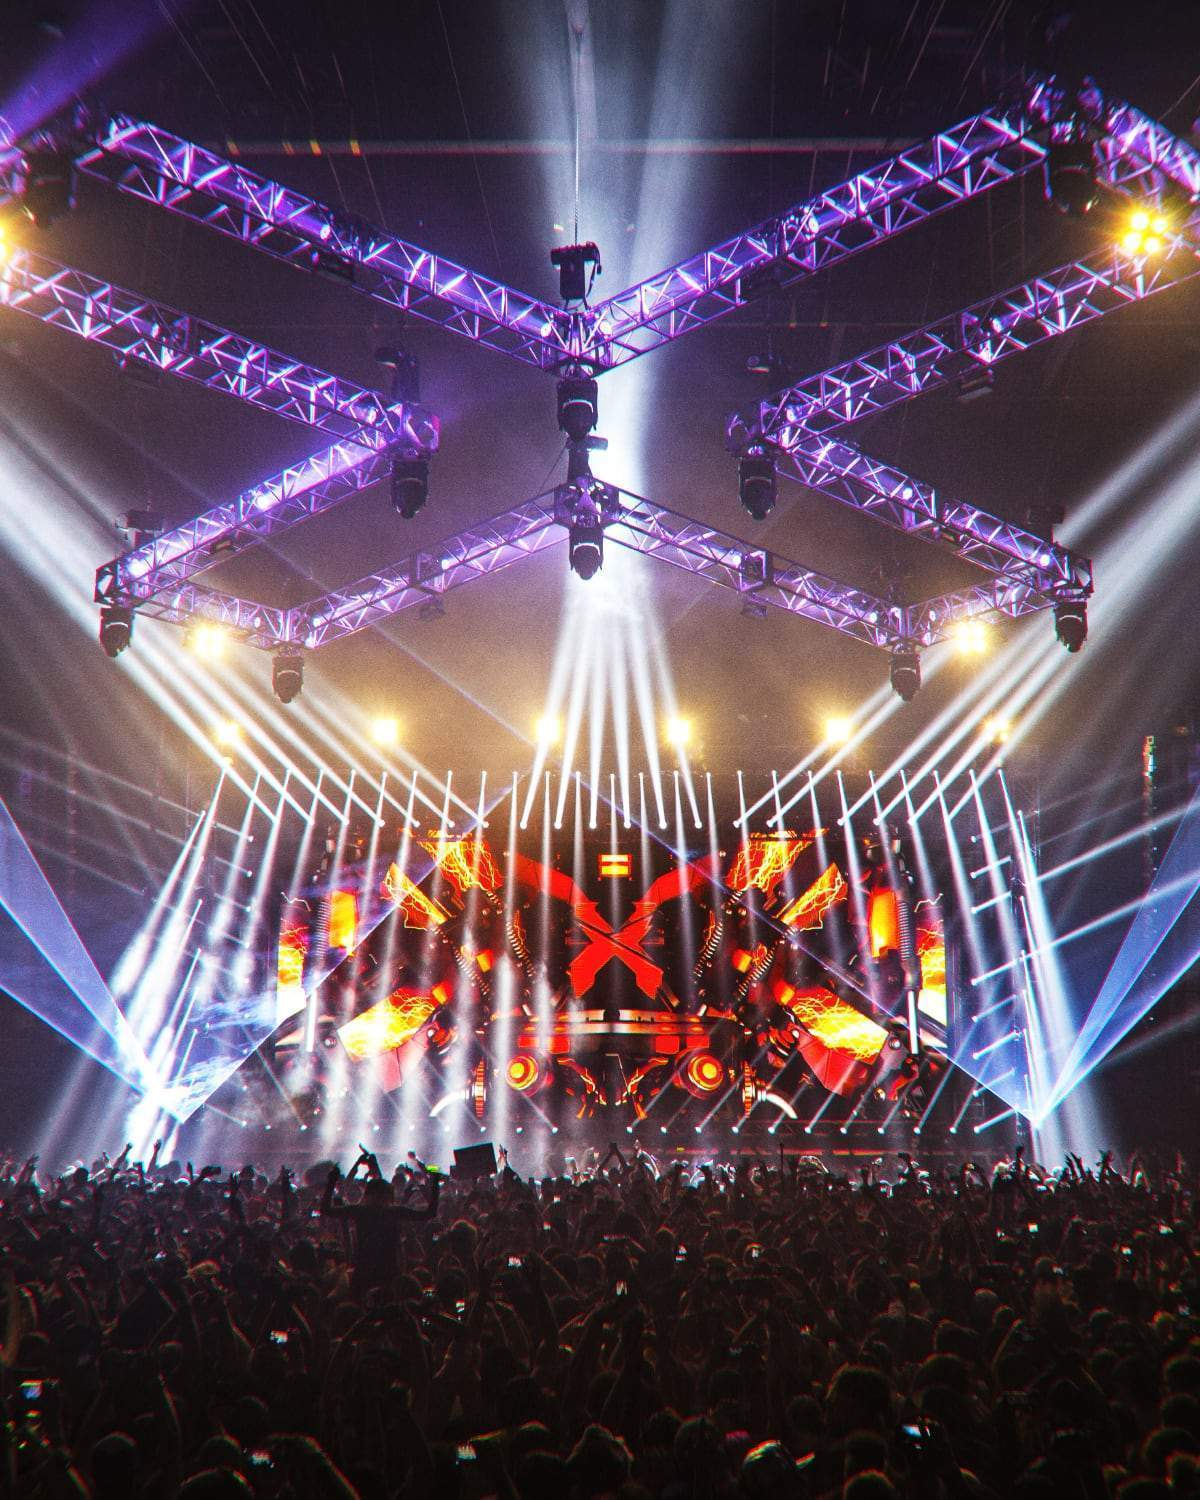 Excision 2018 Tour Featuring The Paradox - New York, NY 03/02